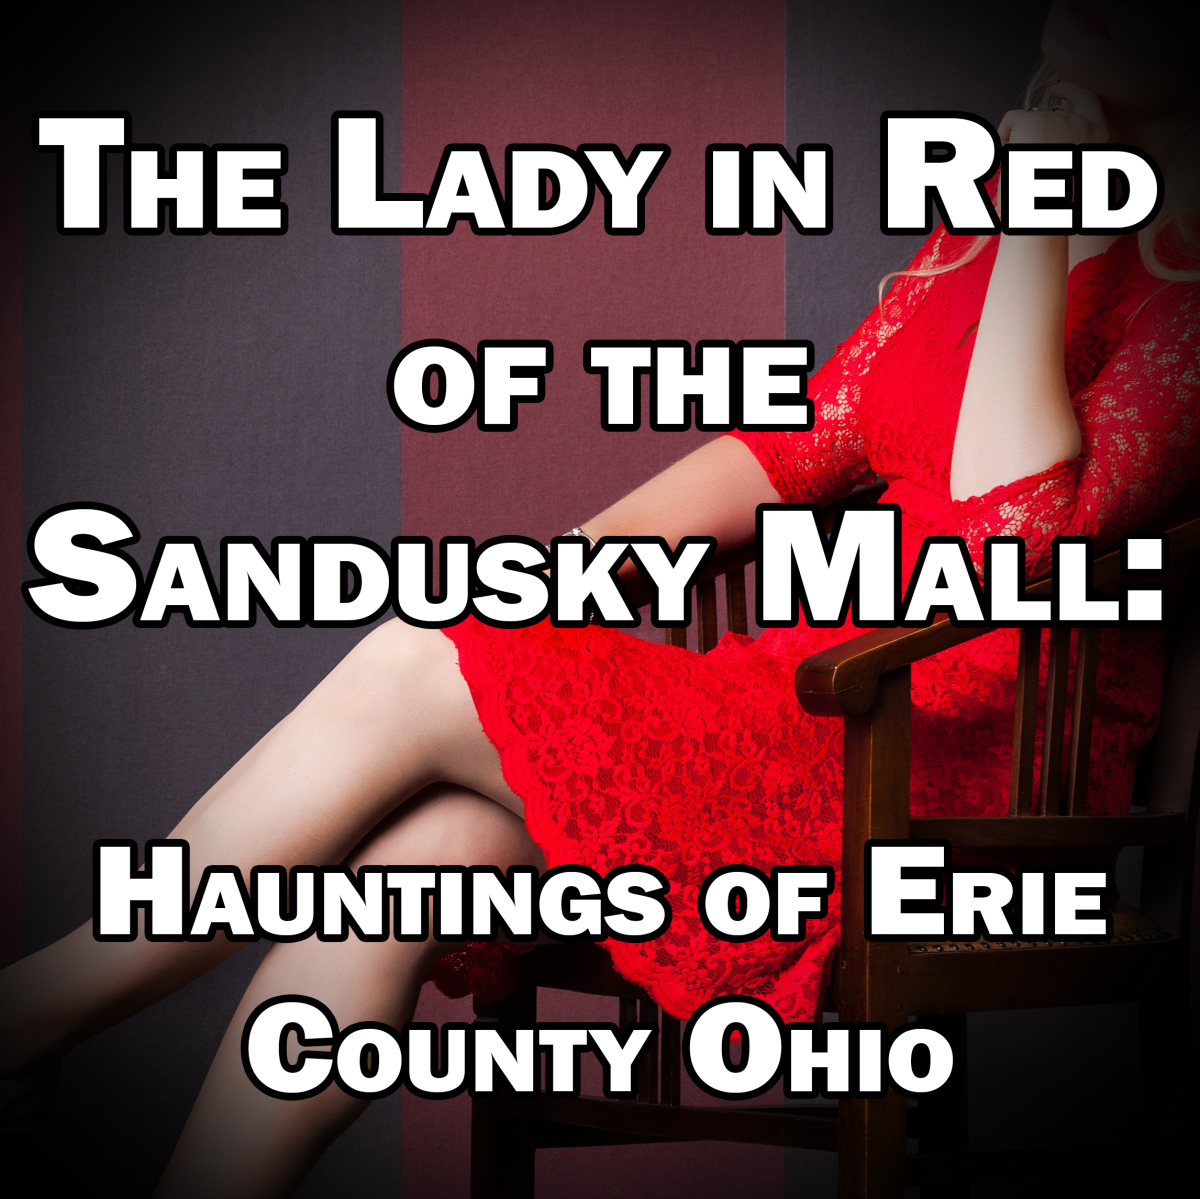 The Lady in Red of the Sandusky Mall: Hauntings of Erie County, Ohio